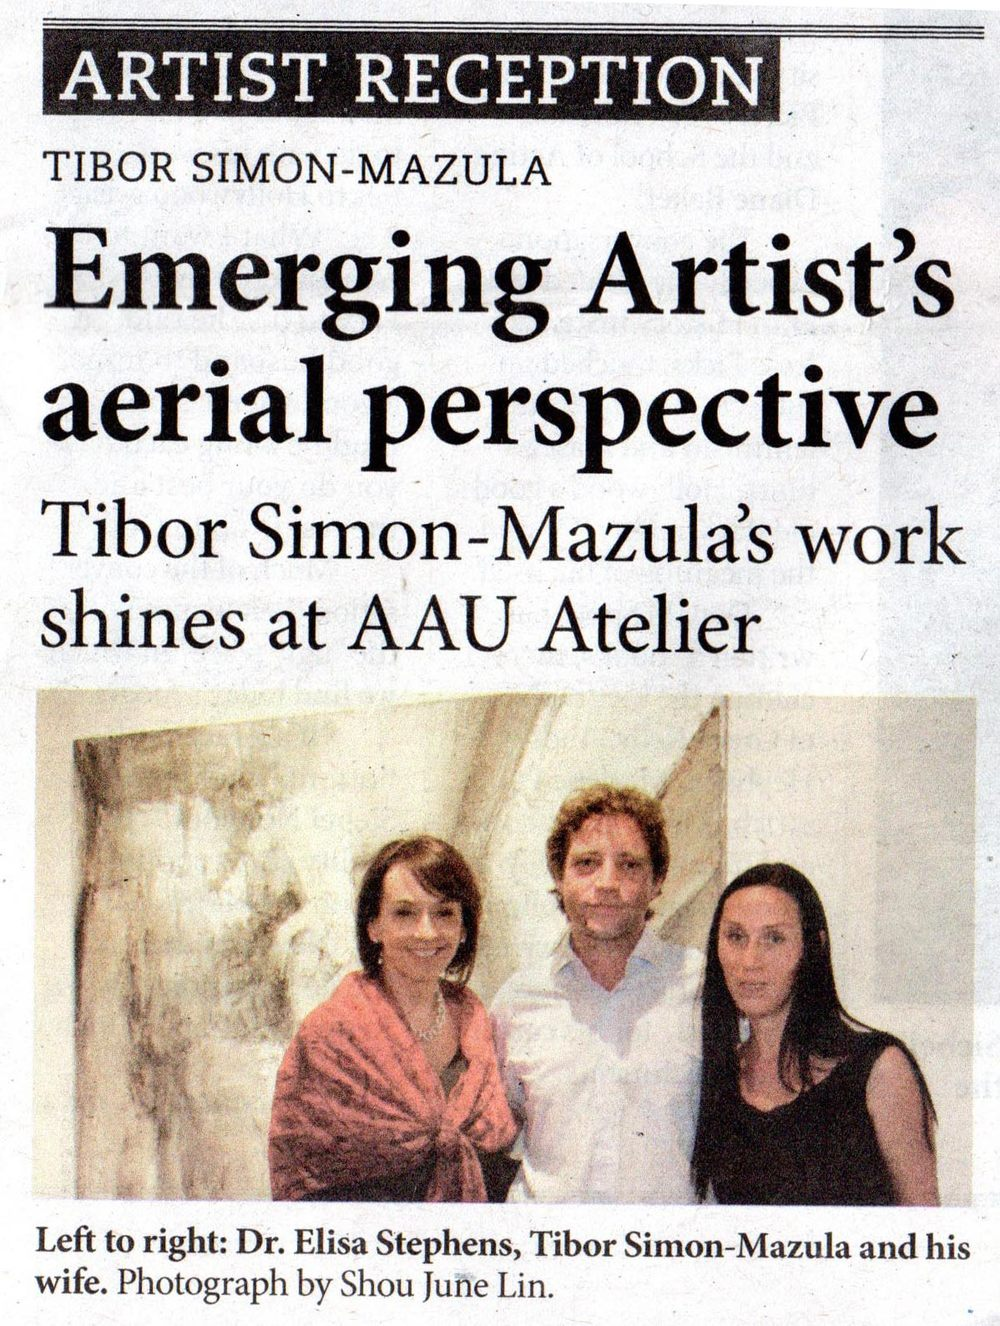 """Emerging Artist's aerial perspective"", Academy of Art University volume 2, October 2013, pp. 2, United States"